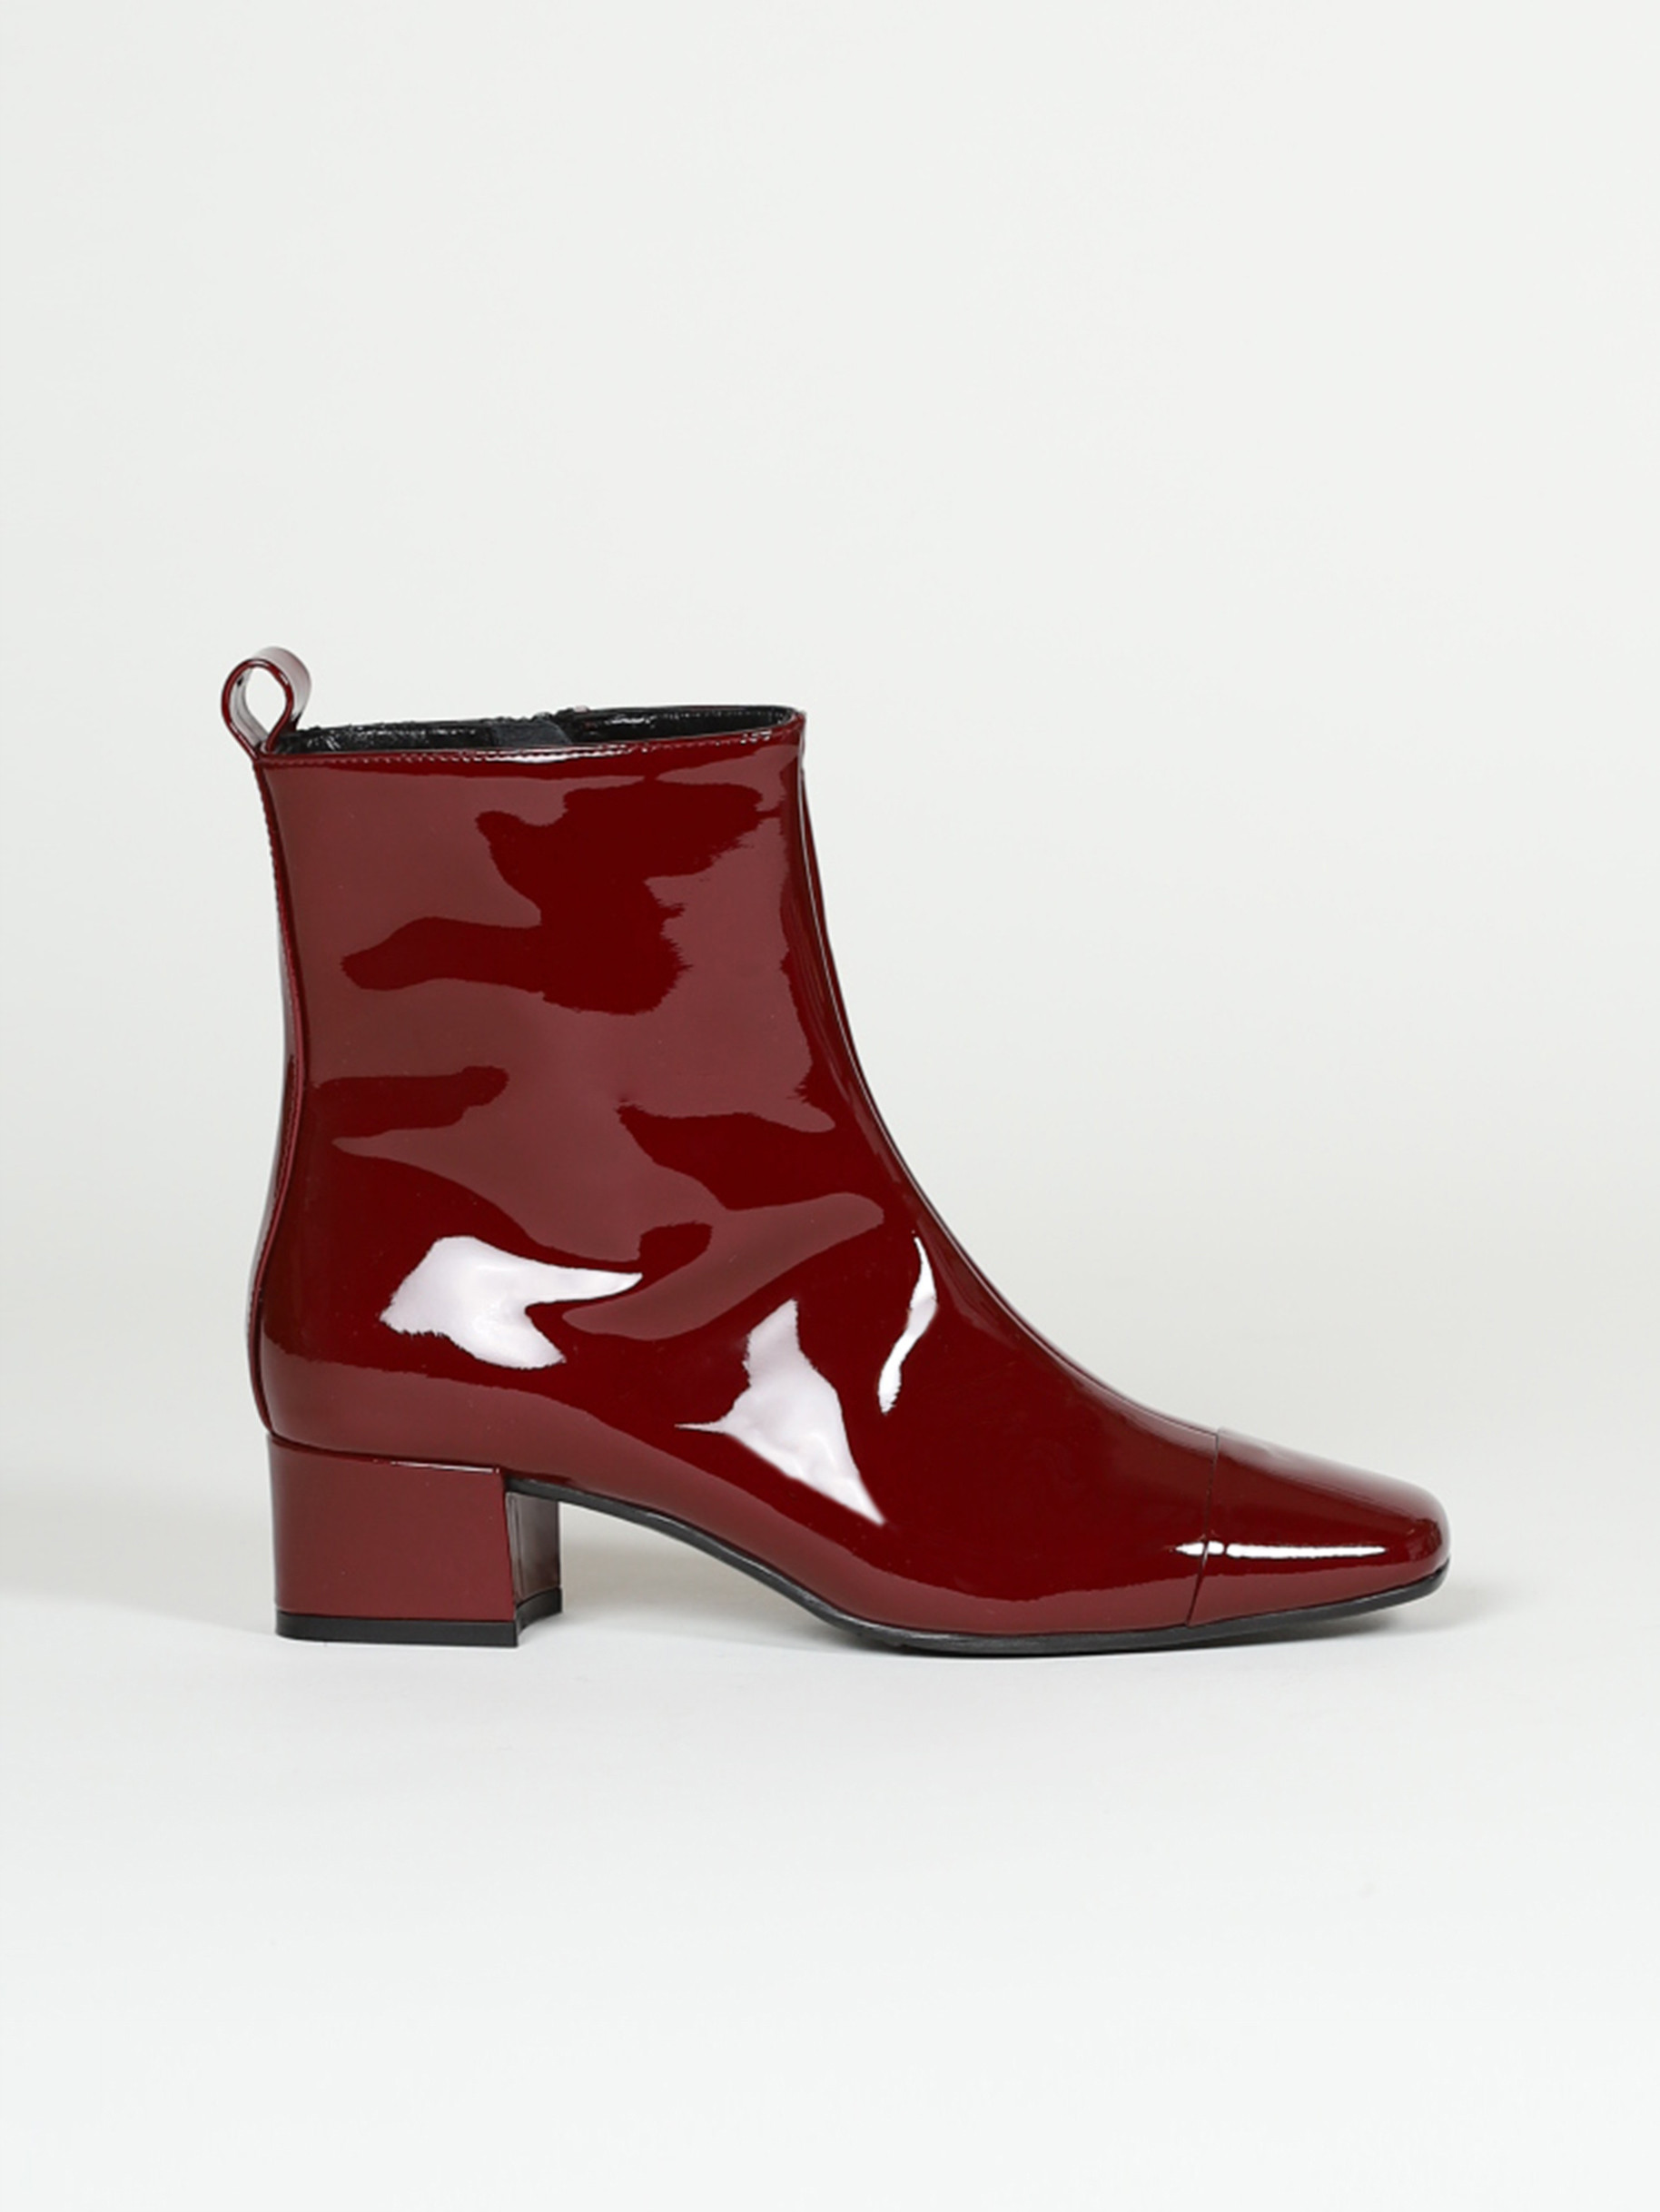 Burgundy patent leather ankle boots